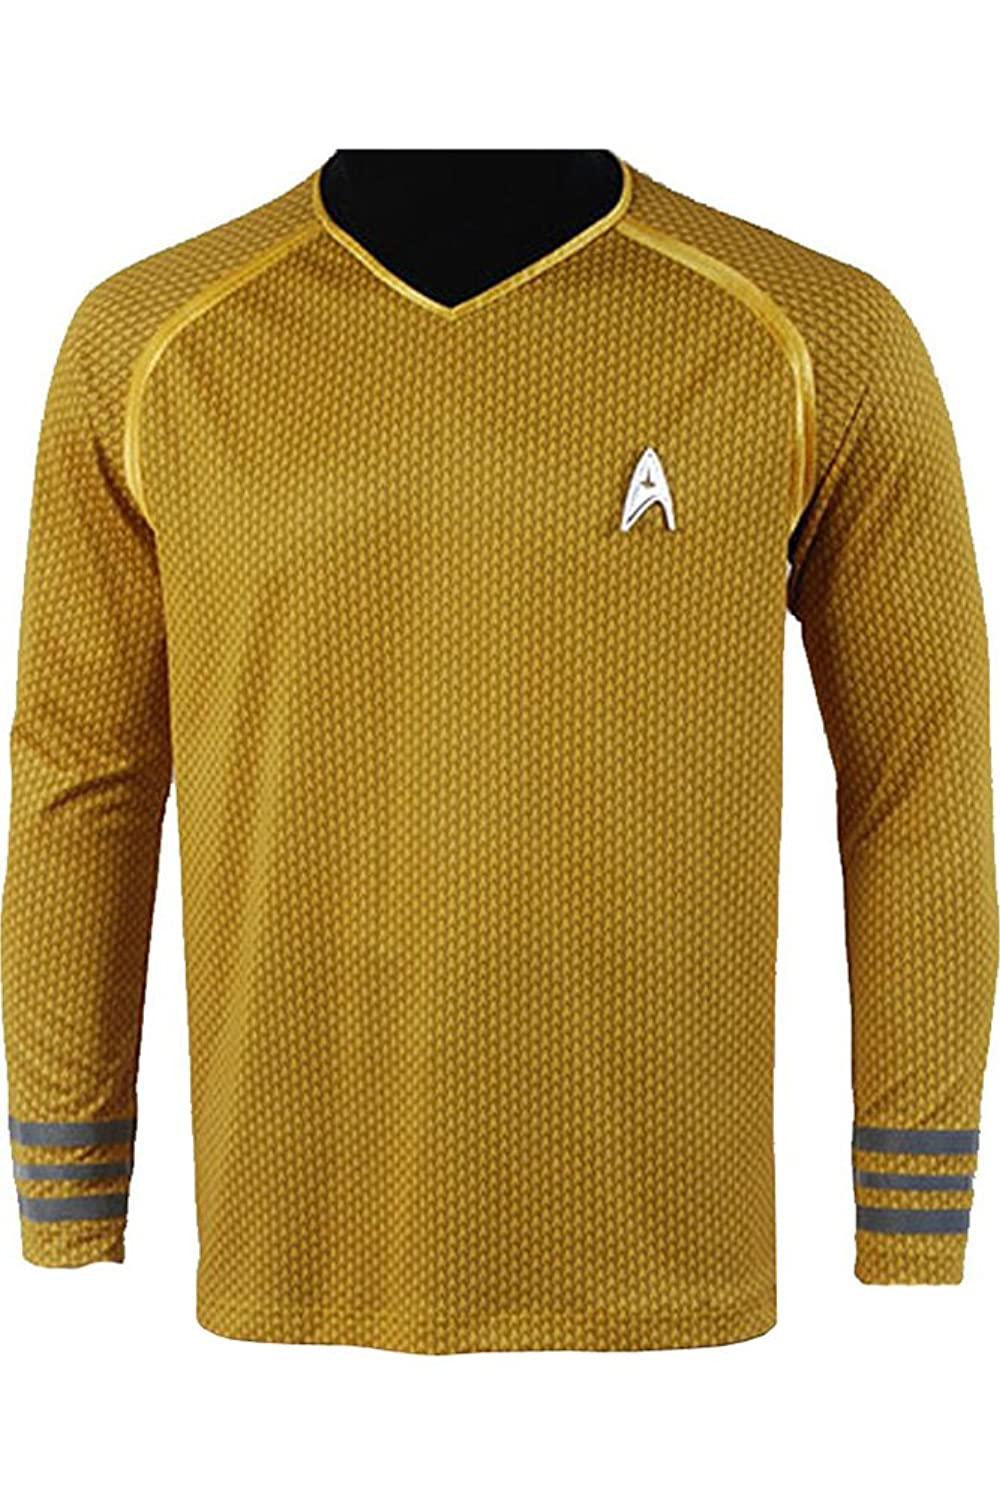 Star Trek Into Darkness Captain Kirk Shirt